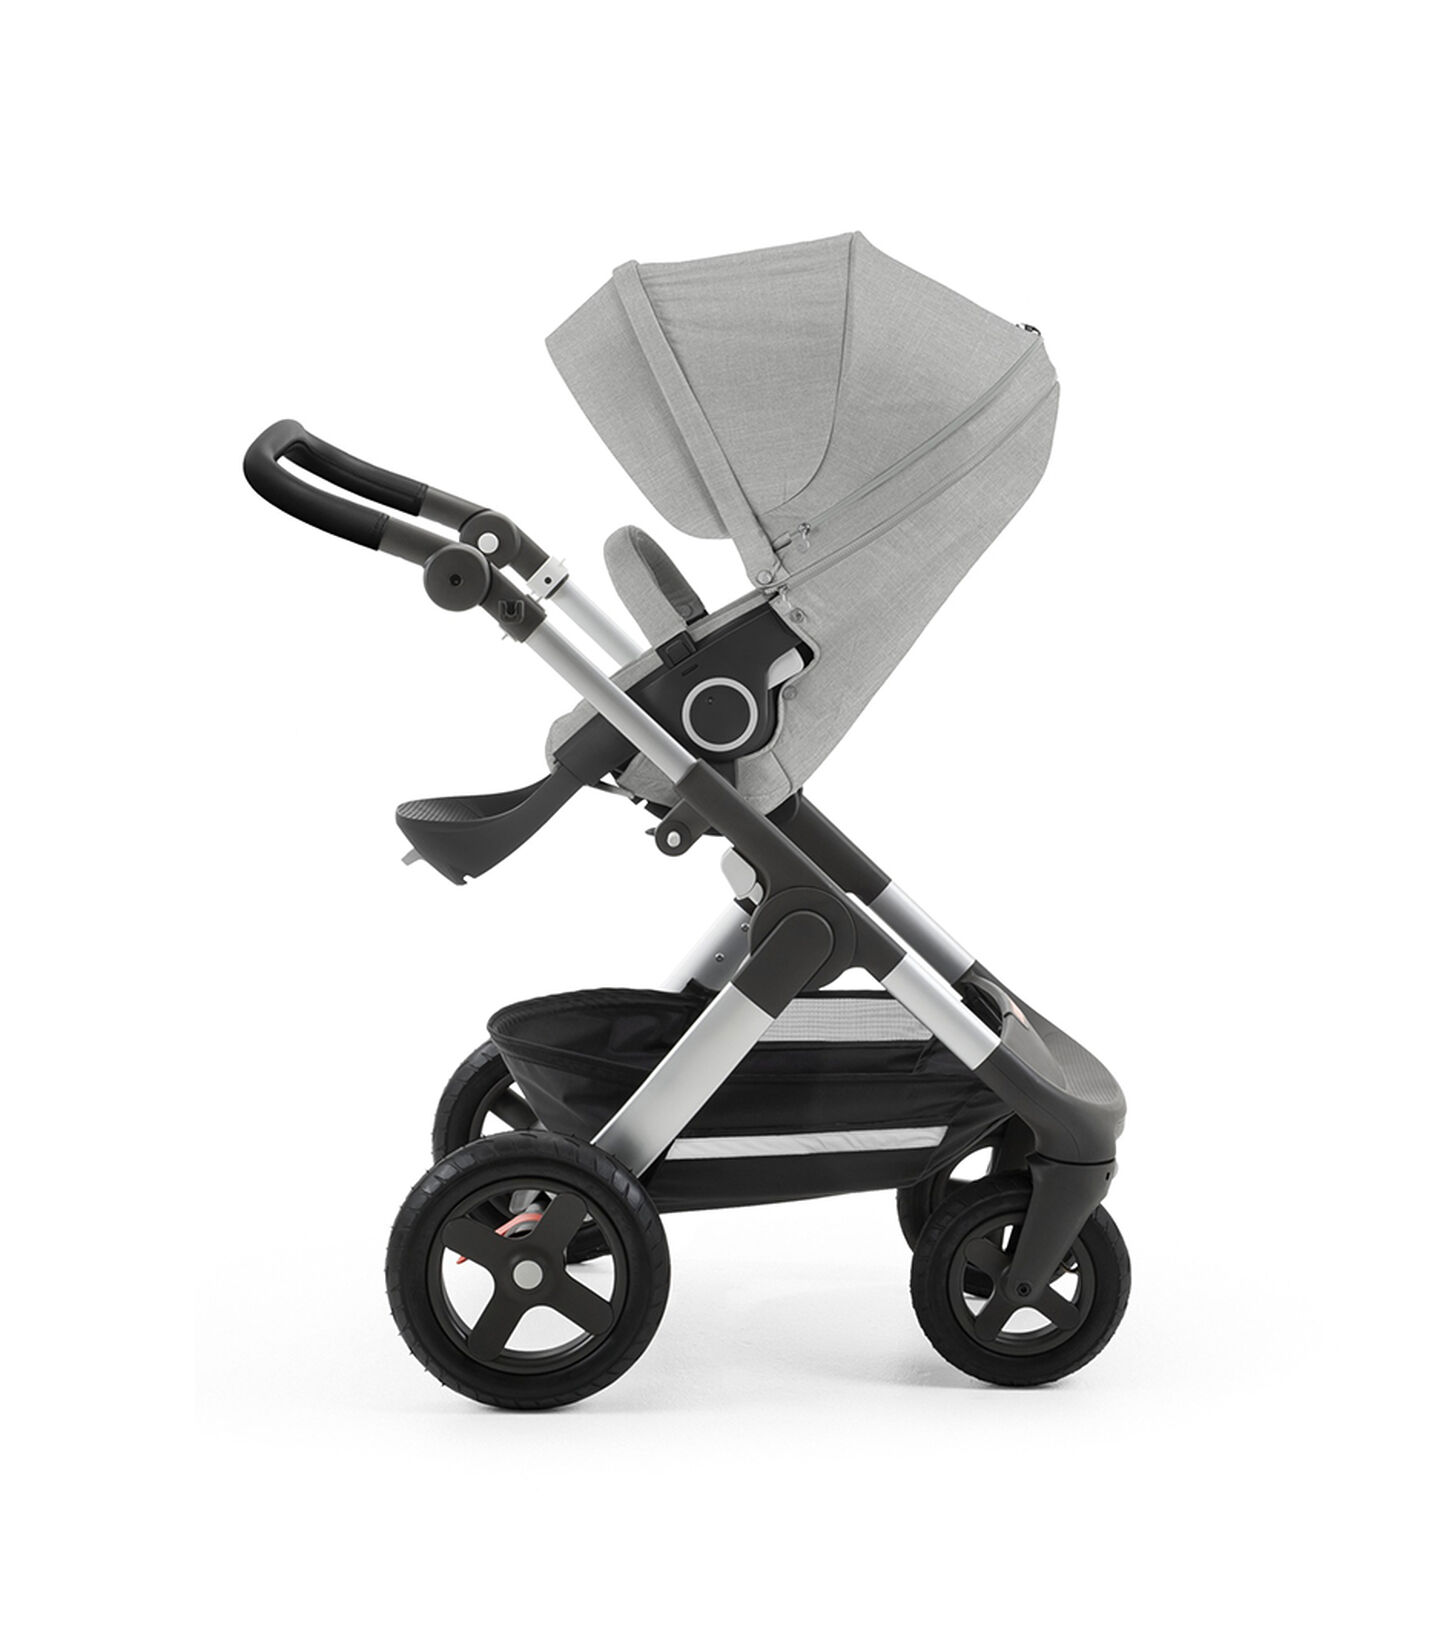 Stokke® Trailz™ with silver chassis and Stokke® Stroller Seat, Grey Melange. Leatherette Handle. Terrain Wheels. view 2